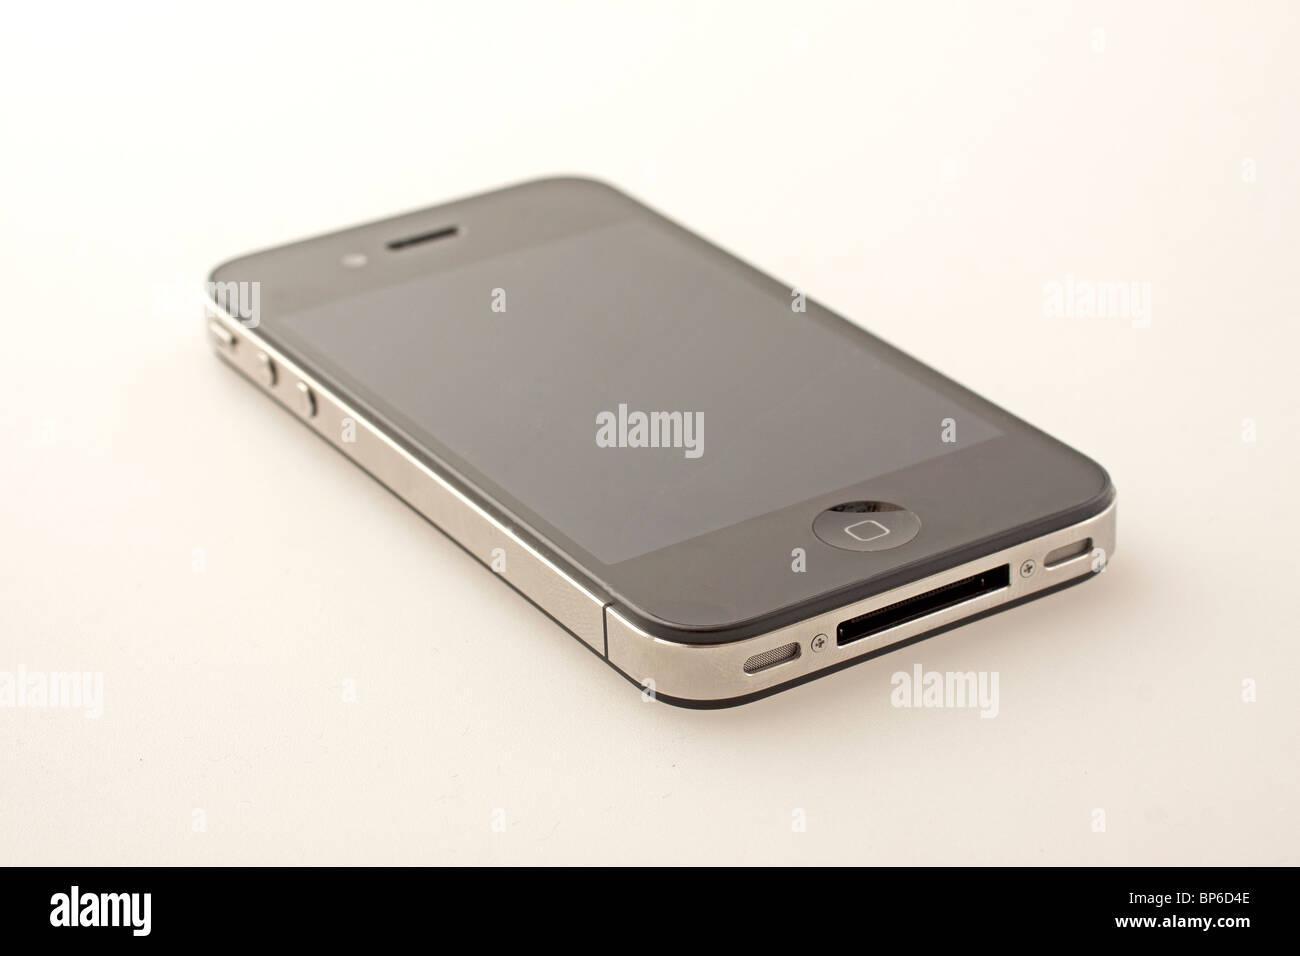 Brand new iPhone 4 over gray/white background Stock Photo